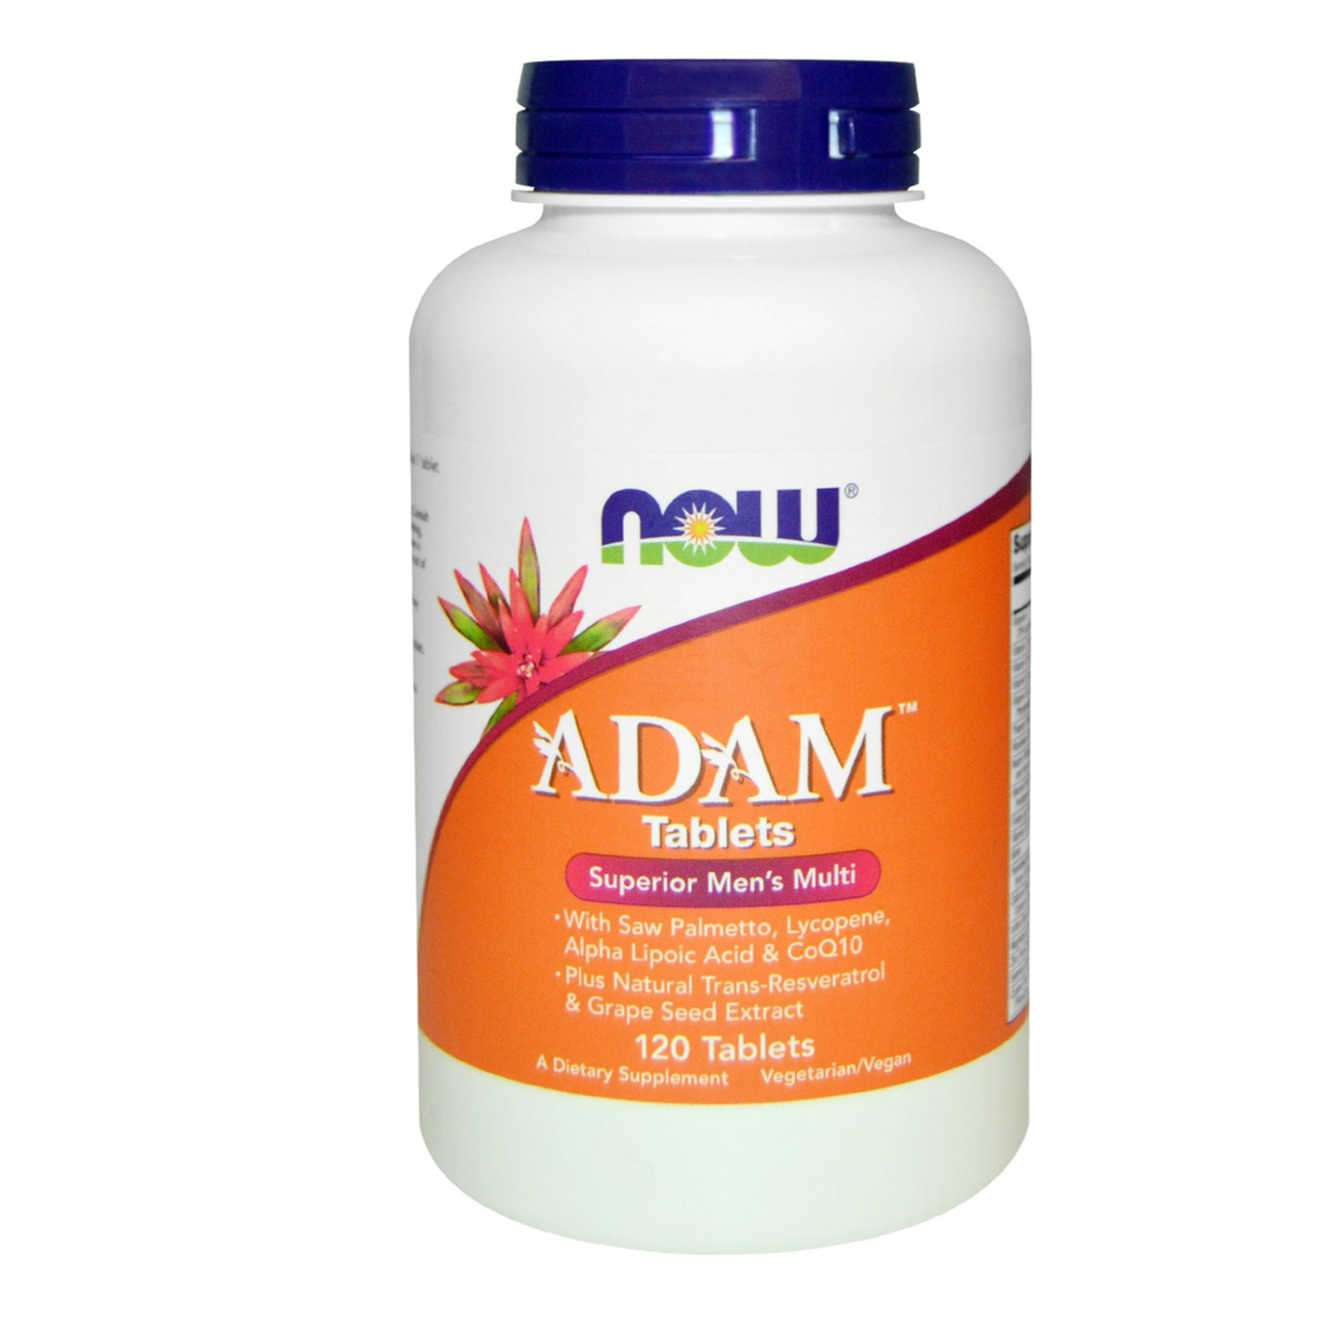 ADAM™ MULTIVITAMINS FOR MEN TABLETS